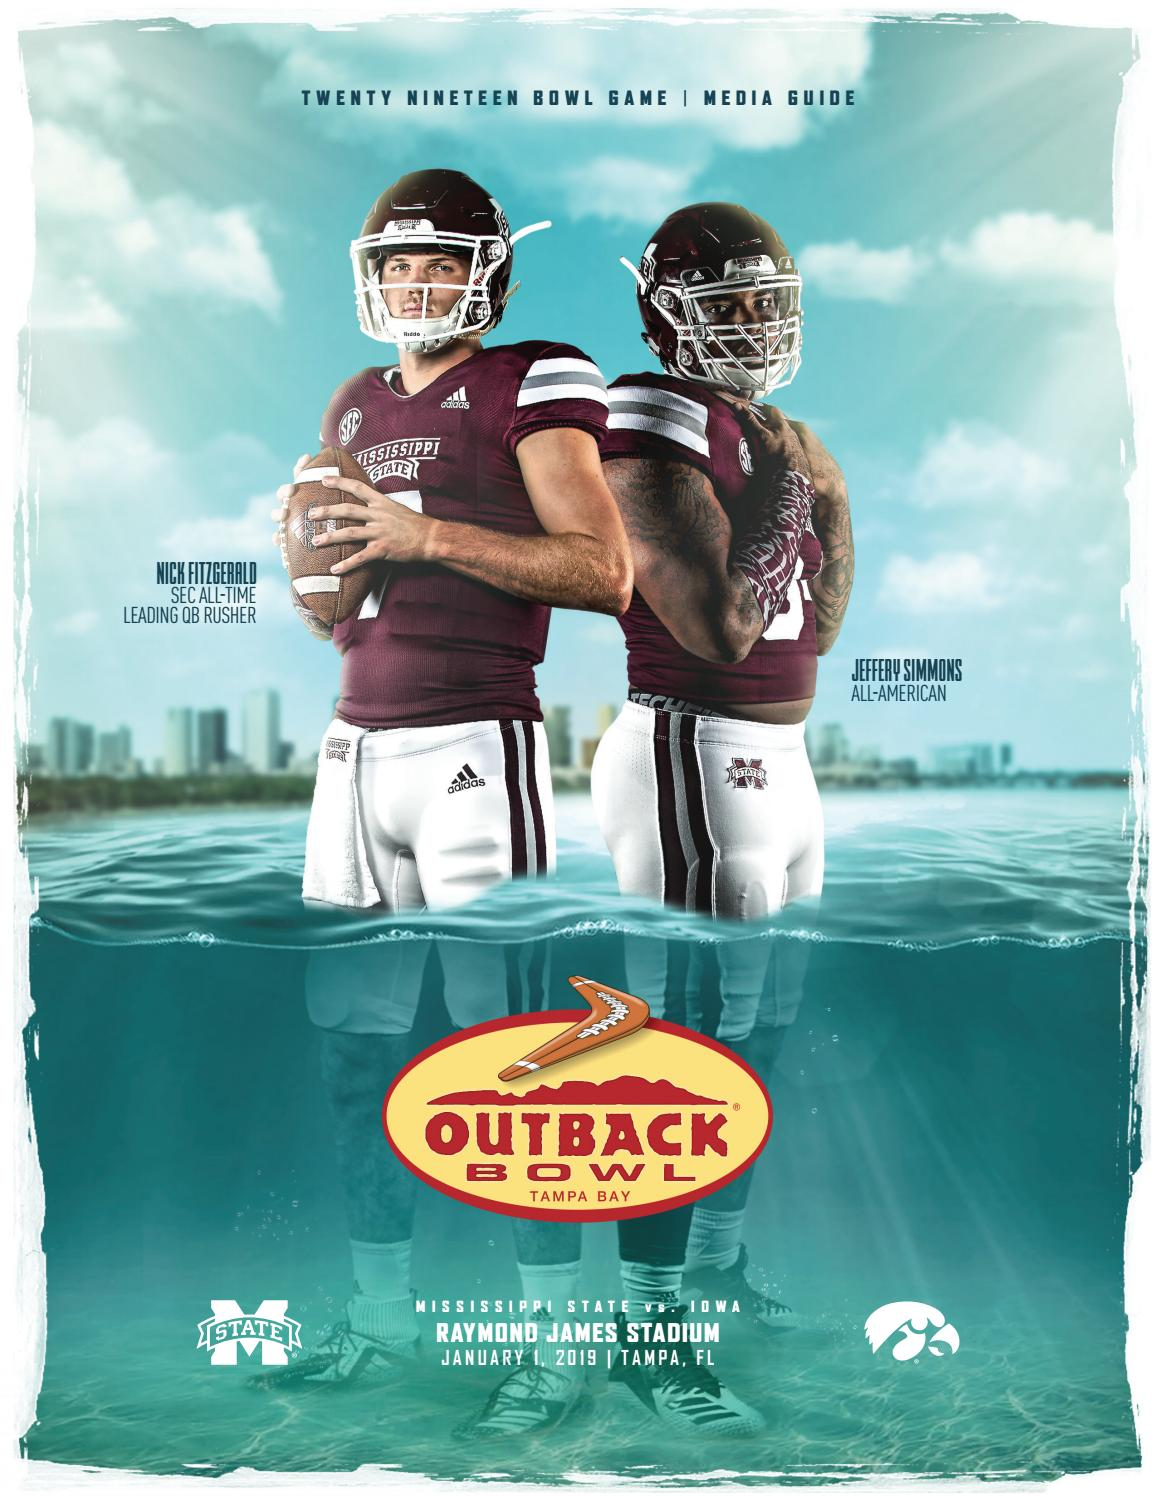 43d1e4cef 2019 Mississippi State Football Outback Bowl Media Guide by ...